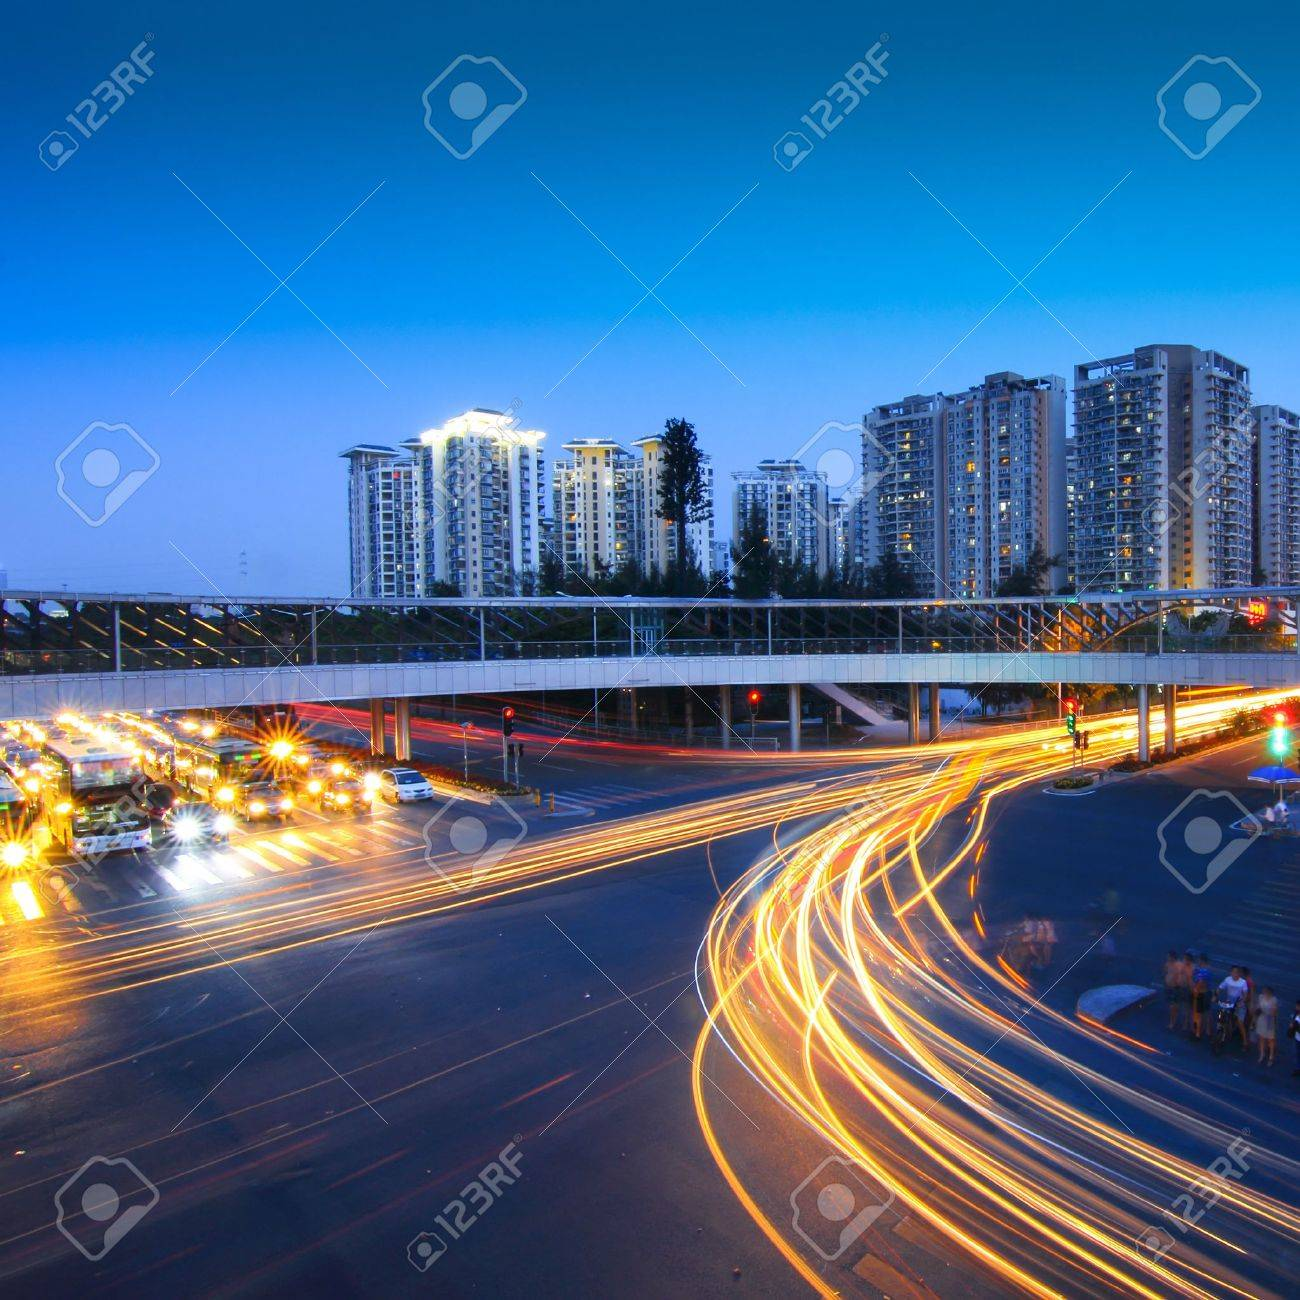 road with car traffic at night and blurry lights showing speed and motion Stock Photo - 10642080